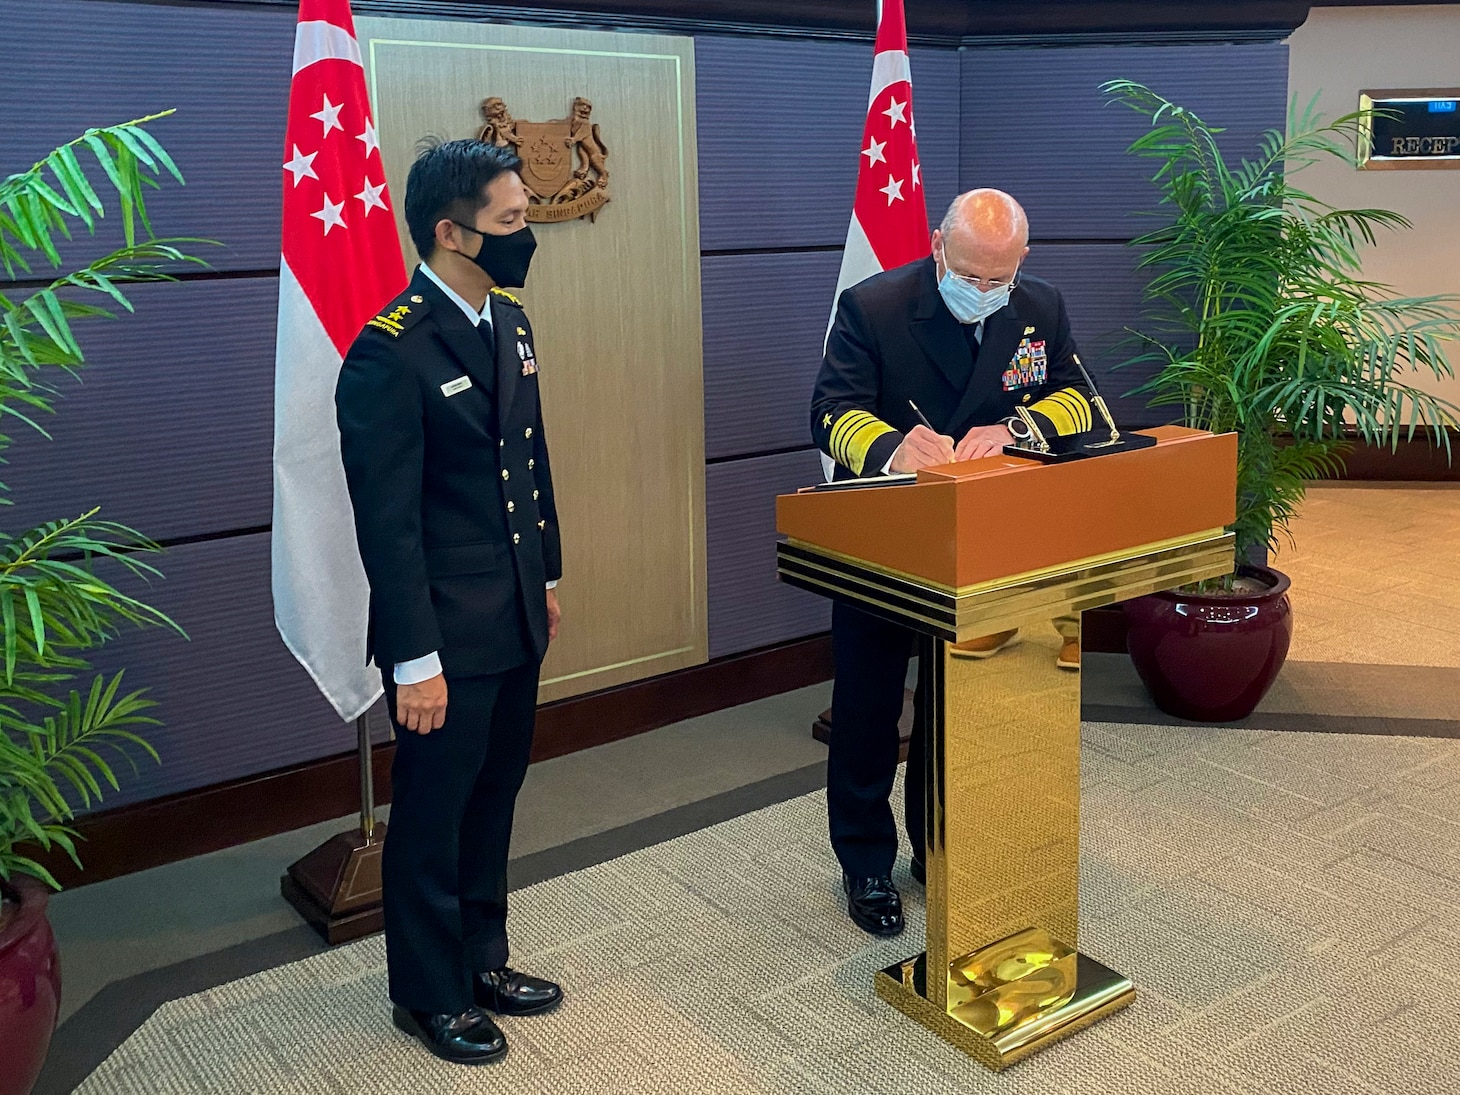 SINGAPORE (July 26, 2021) - Chief of Naval Operations (CNO) Adm. Mike Gildayvisitsthe Singapore Ministry of Defensewith Chief of Navy, Republic of Singapore Navy Rear Adm. Aaron Beng during a trip to the region. Gilday visited the region to meet with senior military and government leadership to reaffirm the U.S. Navy's commitment to our partners and allies and help keep the seas open and free.(U.S. Navy photo by Cmdr. Nate Christensen/Released)